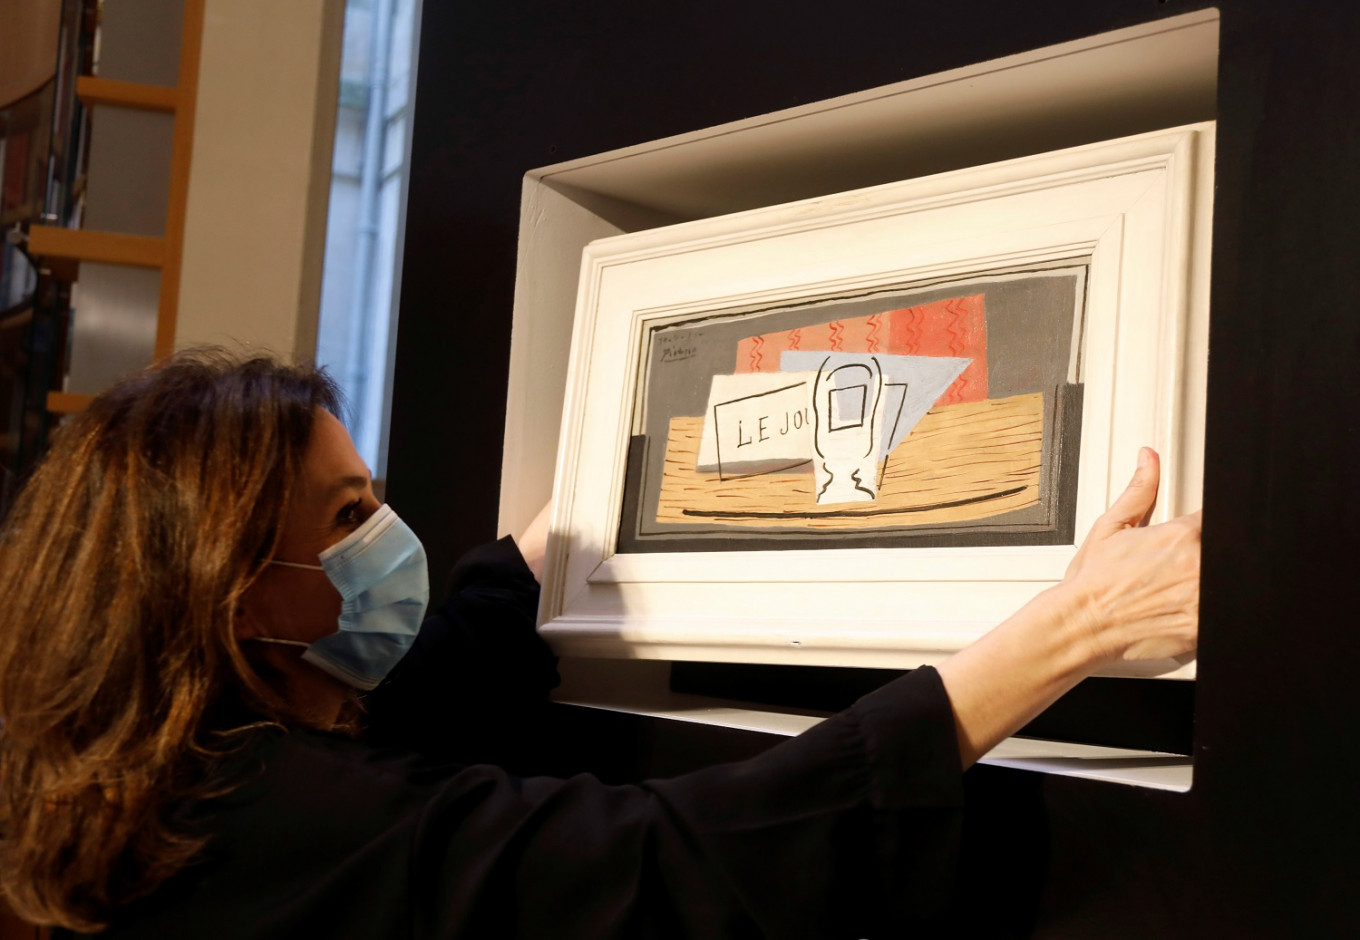 Italian woman wins Picasso painting in French charity raffle